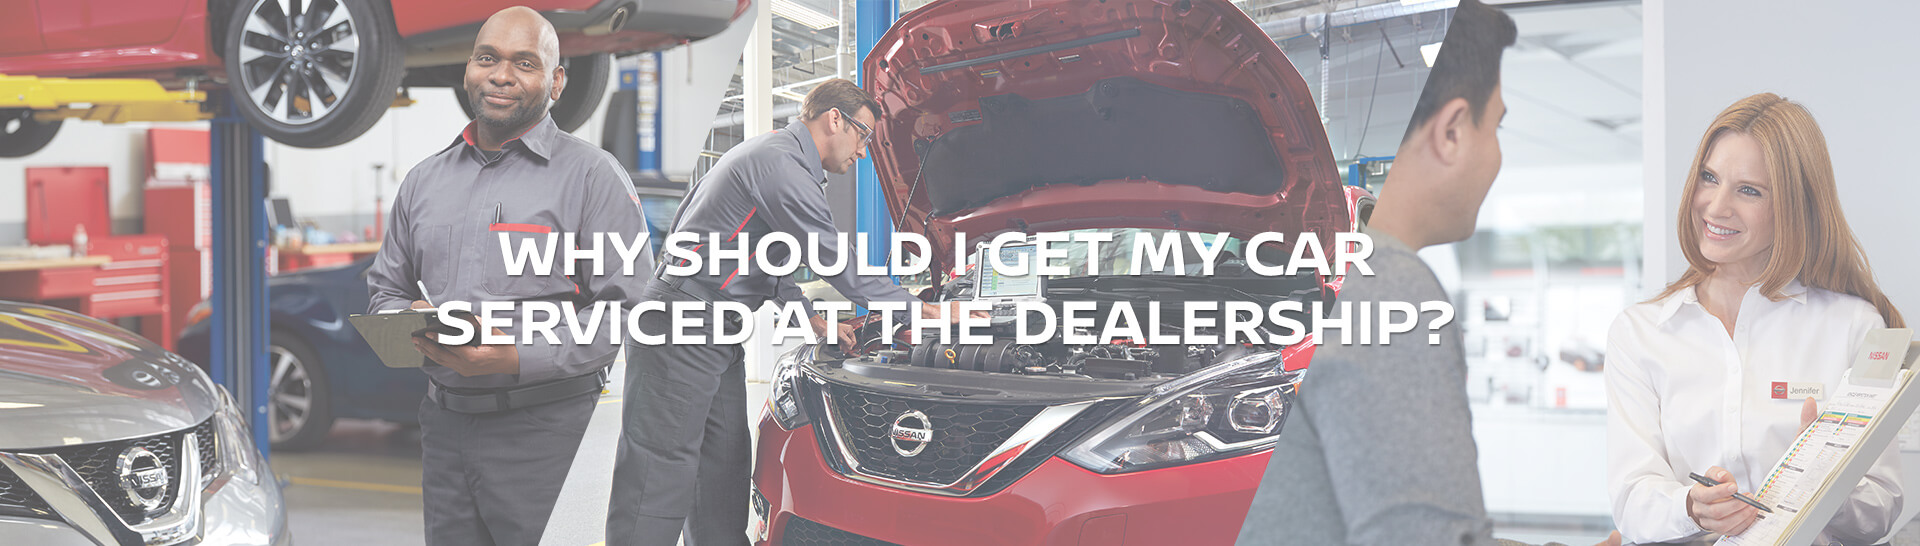 Why should I get my car serviced at the Dealership?